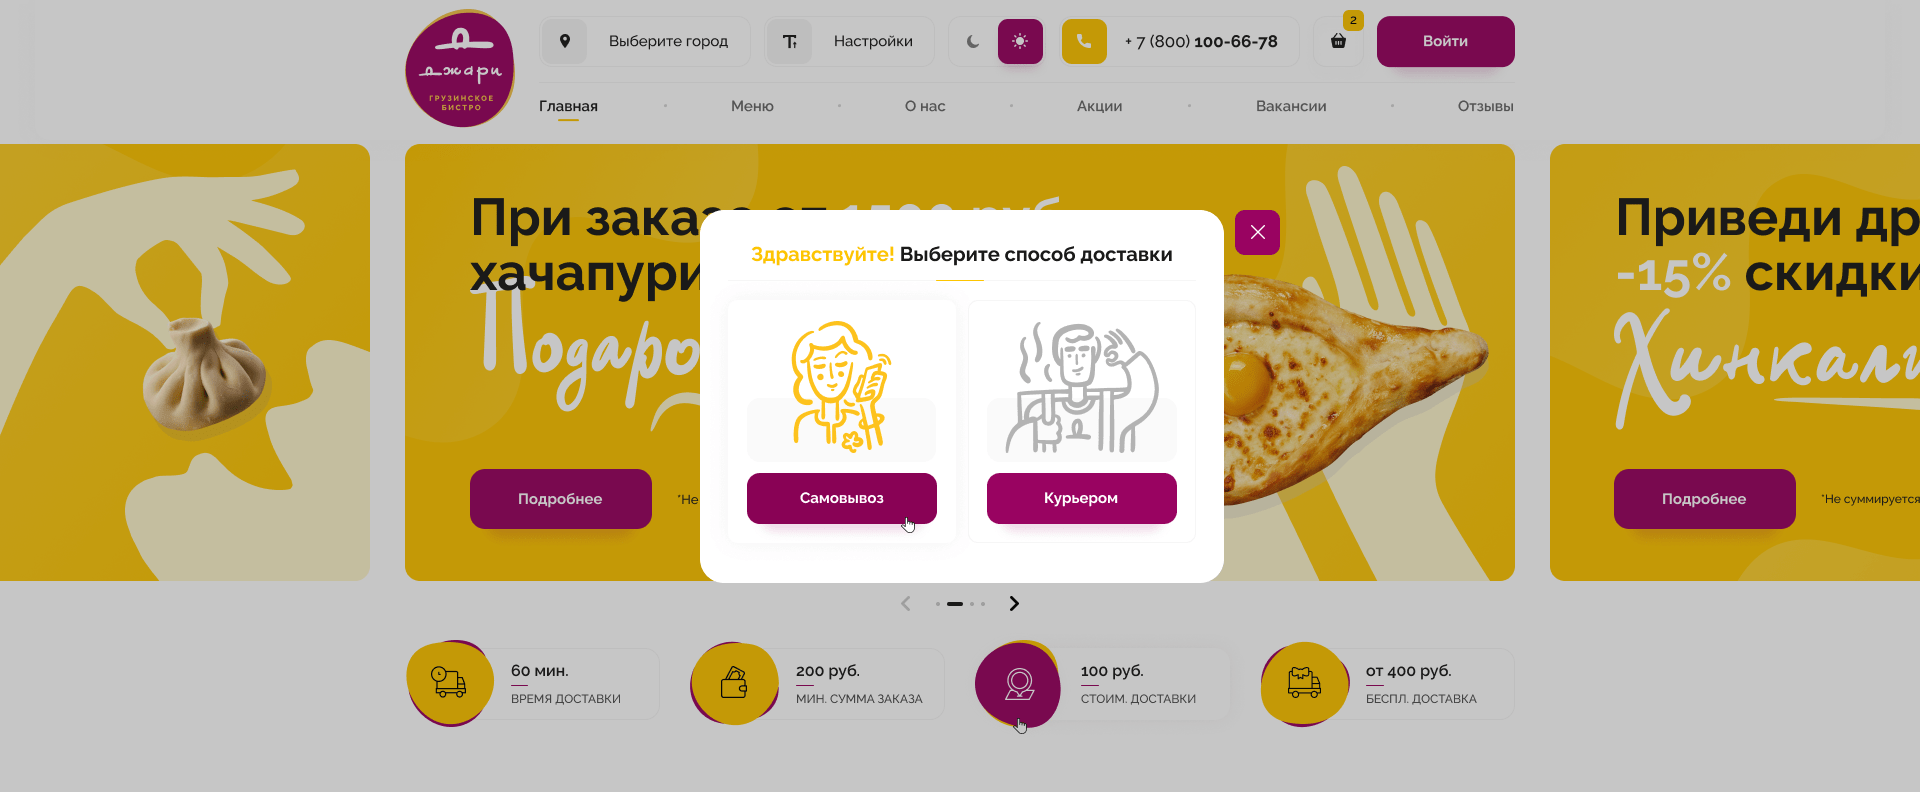 FoodSoul_01_Home_Page_PopUp1_1.0 (1)